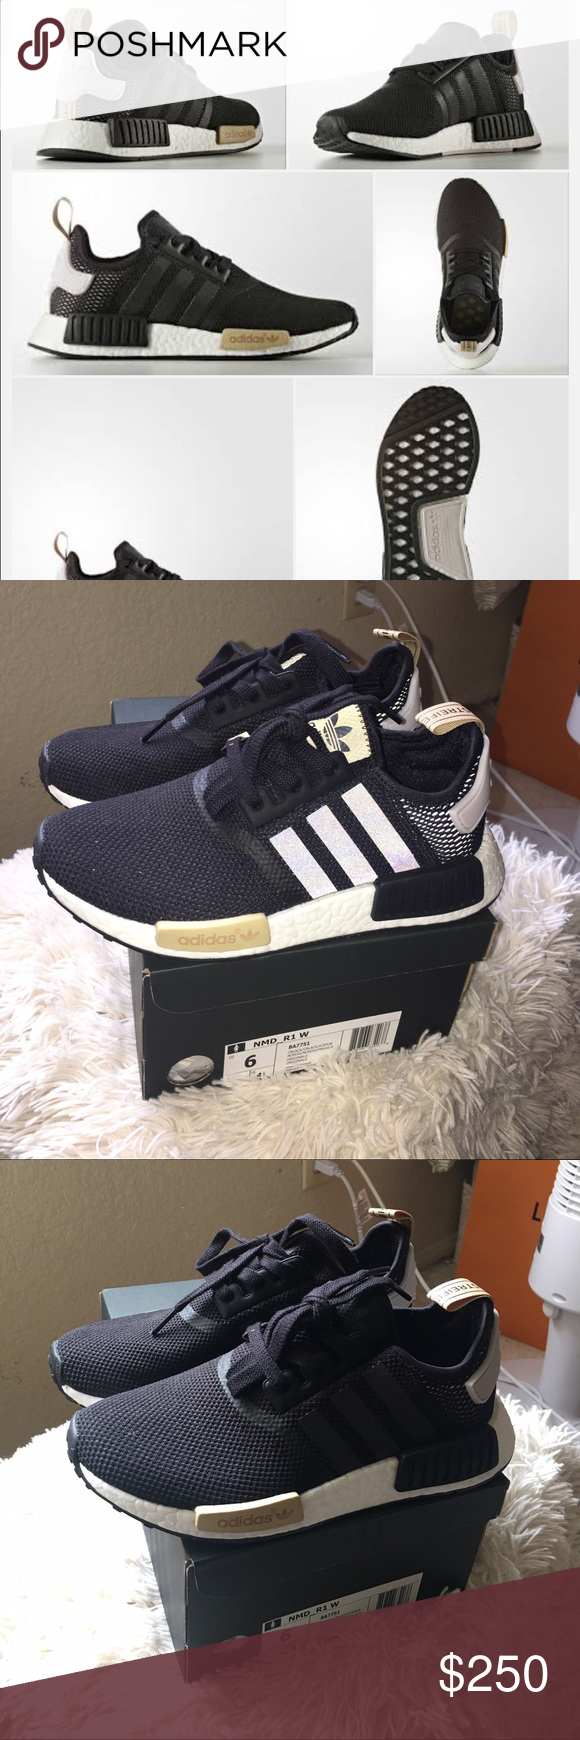 6ec6a86a6 ADIDAS NMD R1 SNEAKERS Size 6 Men- will fit woman size 7-8 -AUTHENTIC WITH  BOX! -BEFORE YOU BUY NMDs (MINE OR ANOTHER SELLER S) PLEASE WATCH A VI   ...